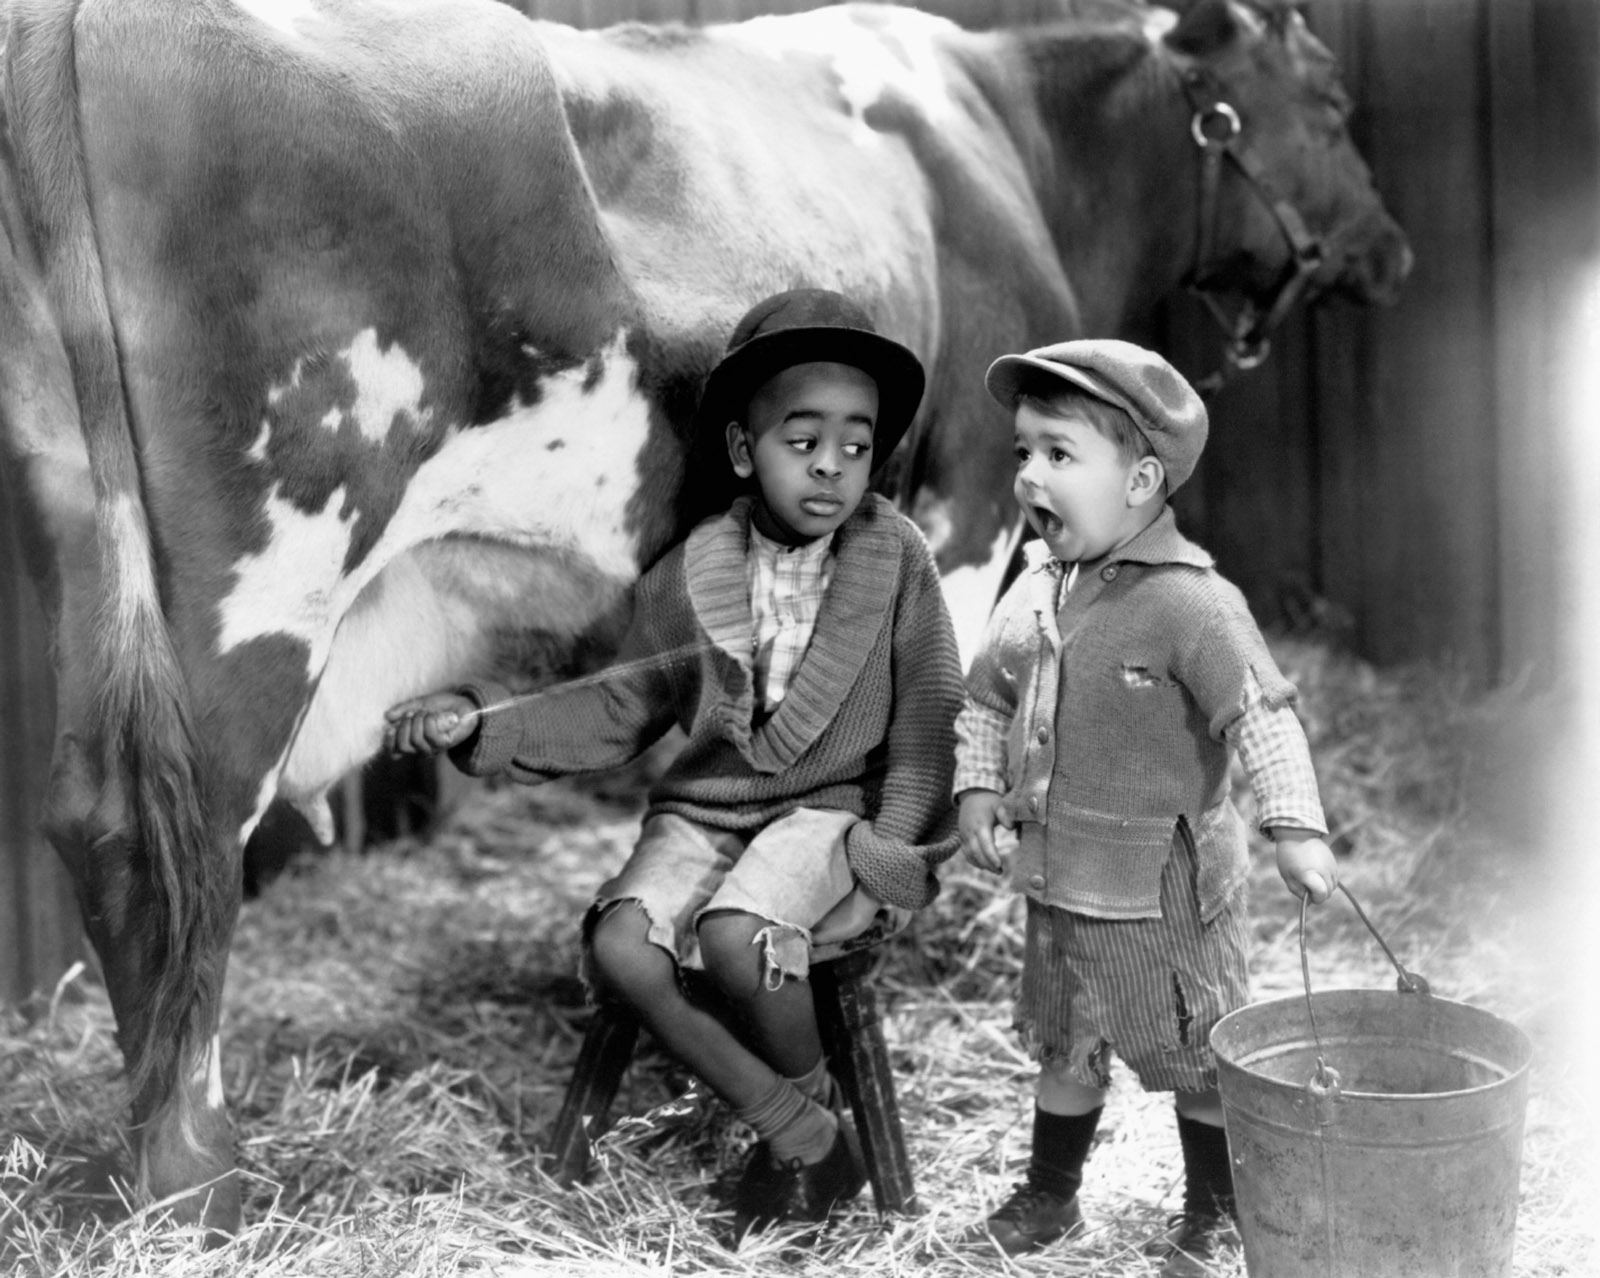 Matthew 'Stymie' Beard and George 'Spanky' McFarland in Mush and Milk, from the Our Gang/Little Rascals series, 1933